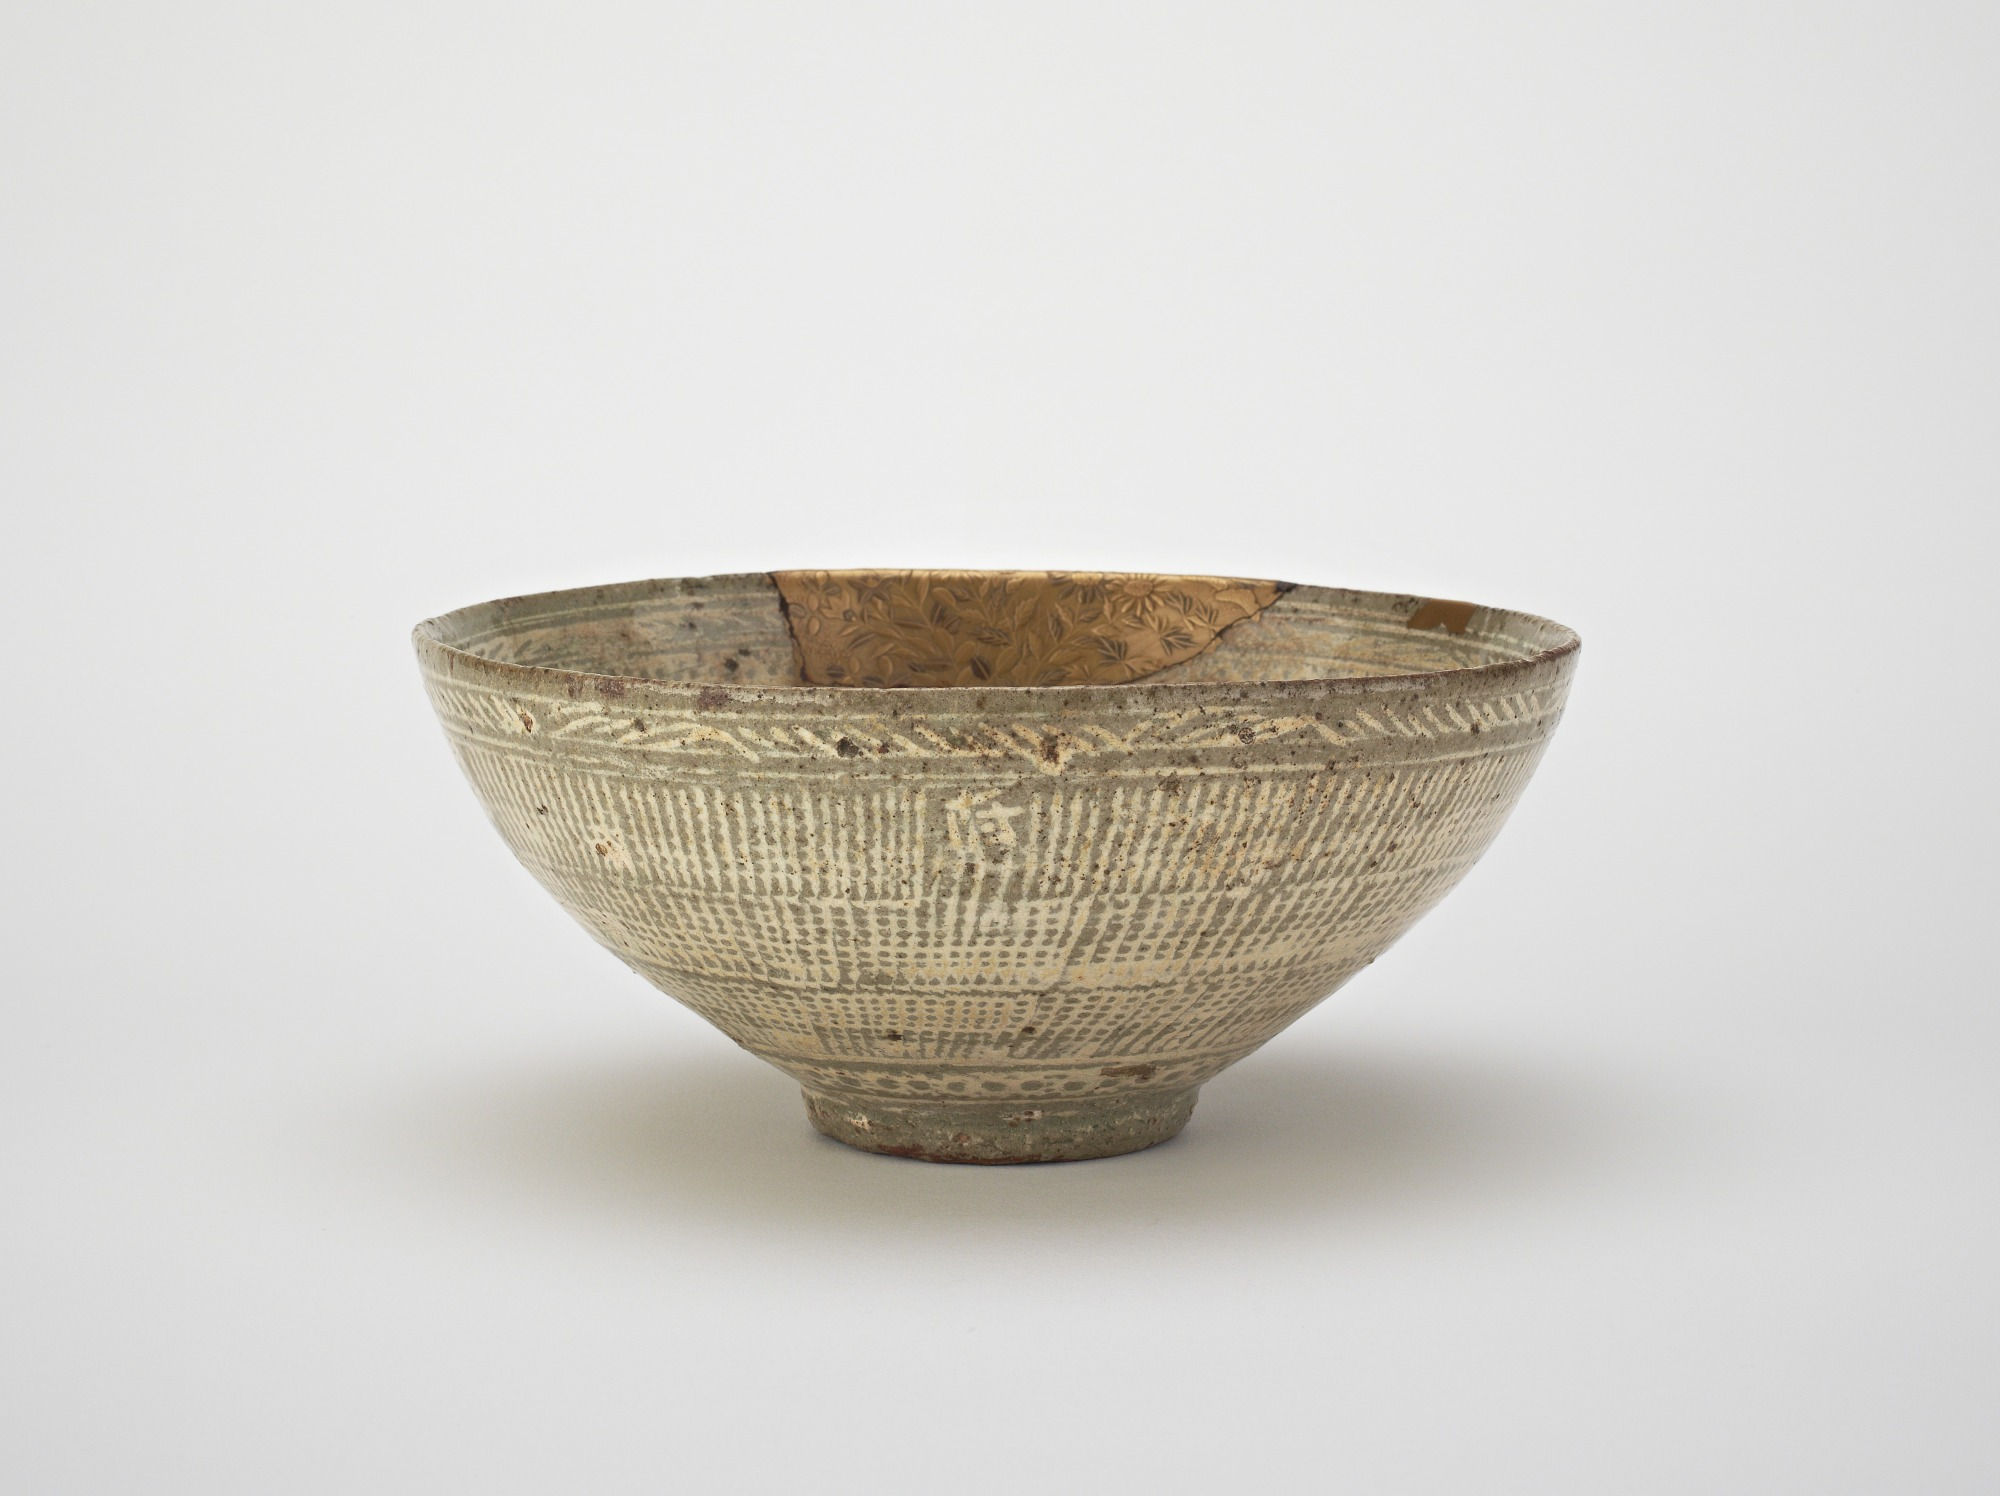 Bowl, used in Japan as tea bowl, profile